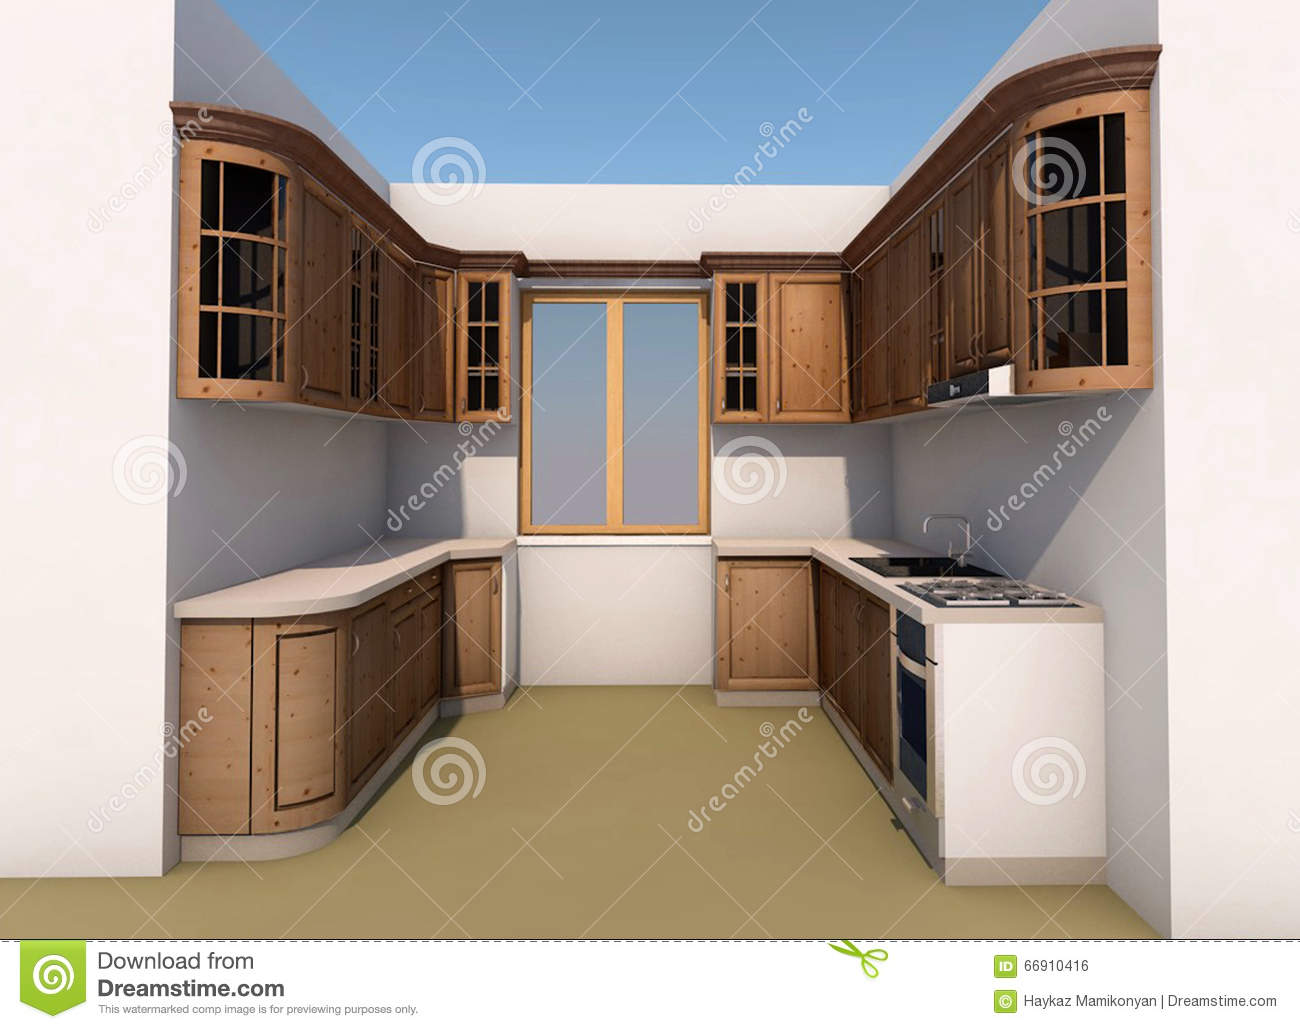 Kitchen design stock illustration  Illustration of interior   66910416 Download comp